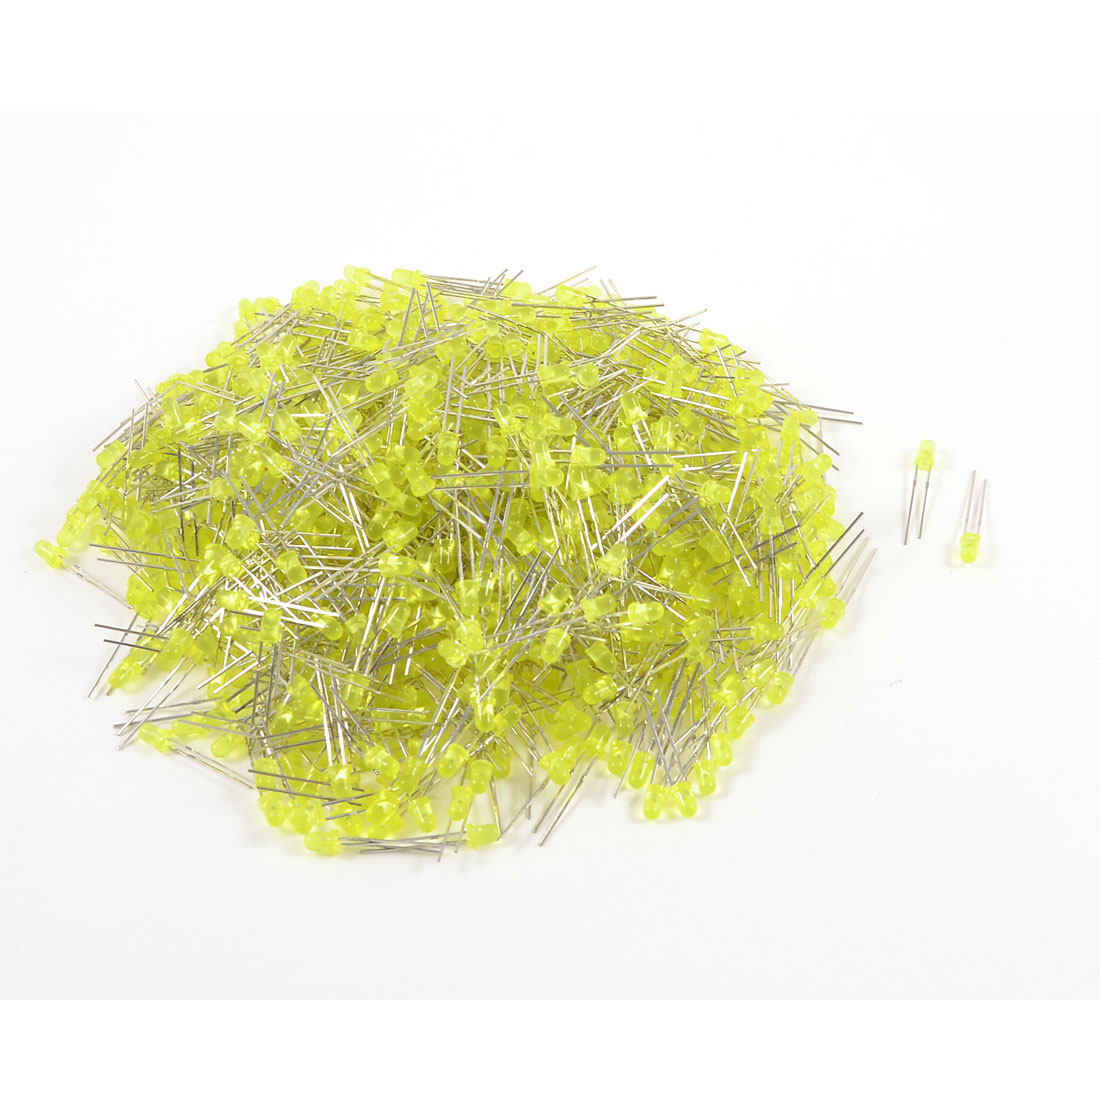 1000 Pcs 1.8-2 VDC 20mA Non-polar 3mm F3 Yellow LED Light Emitting Diodes